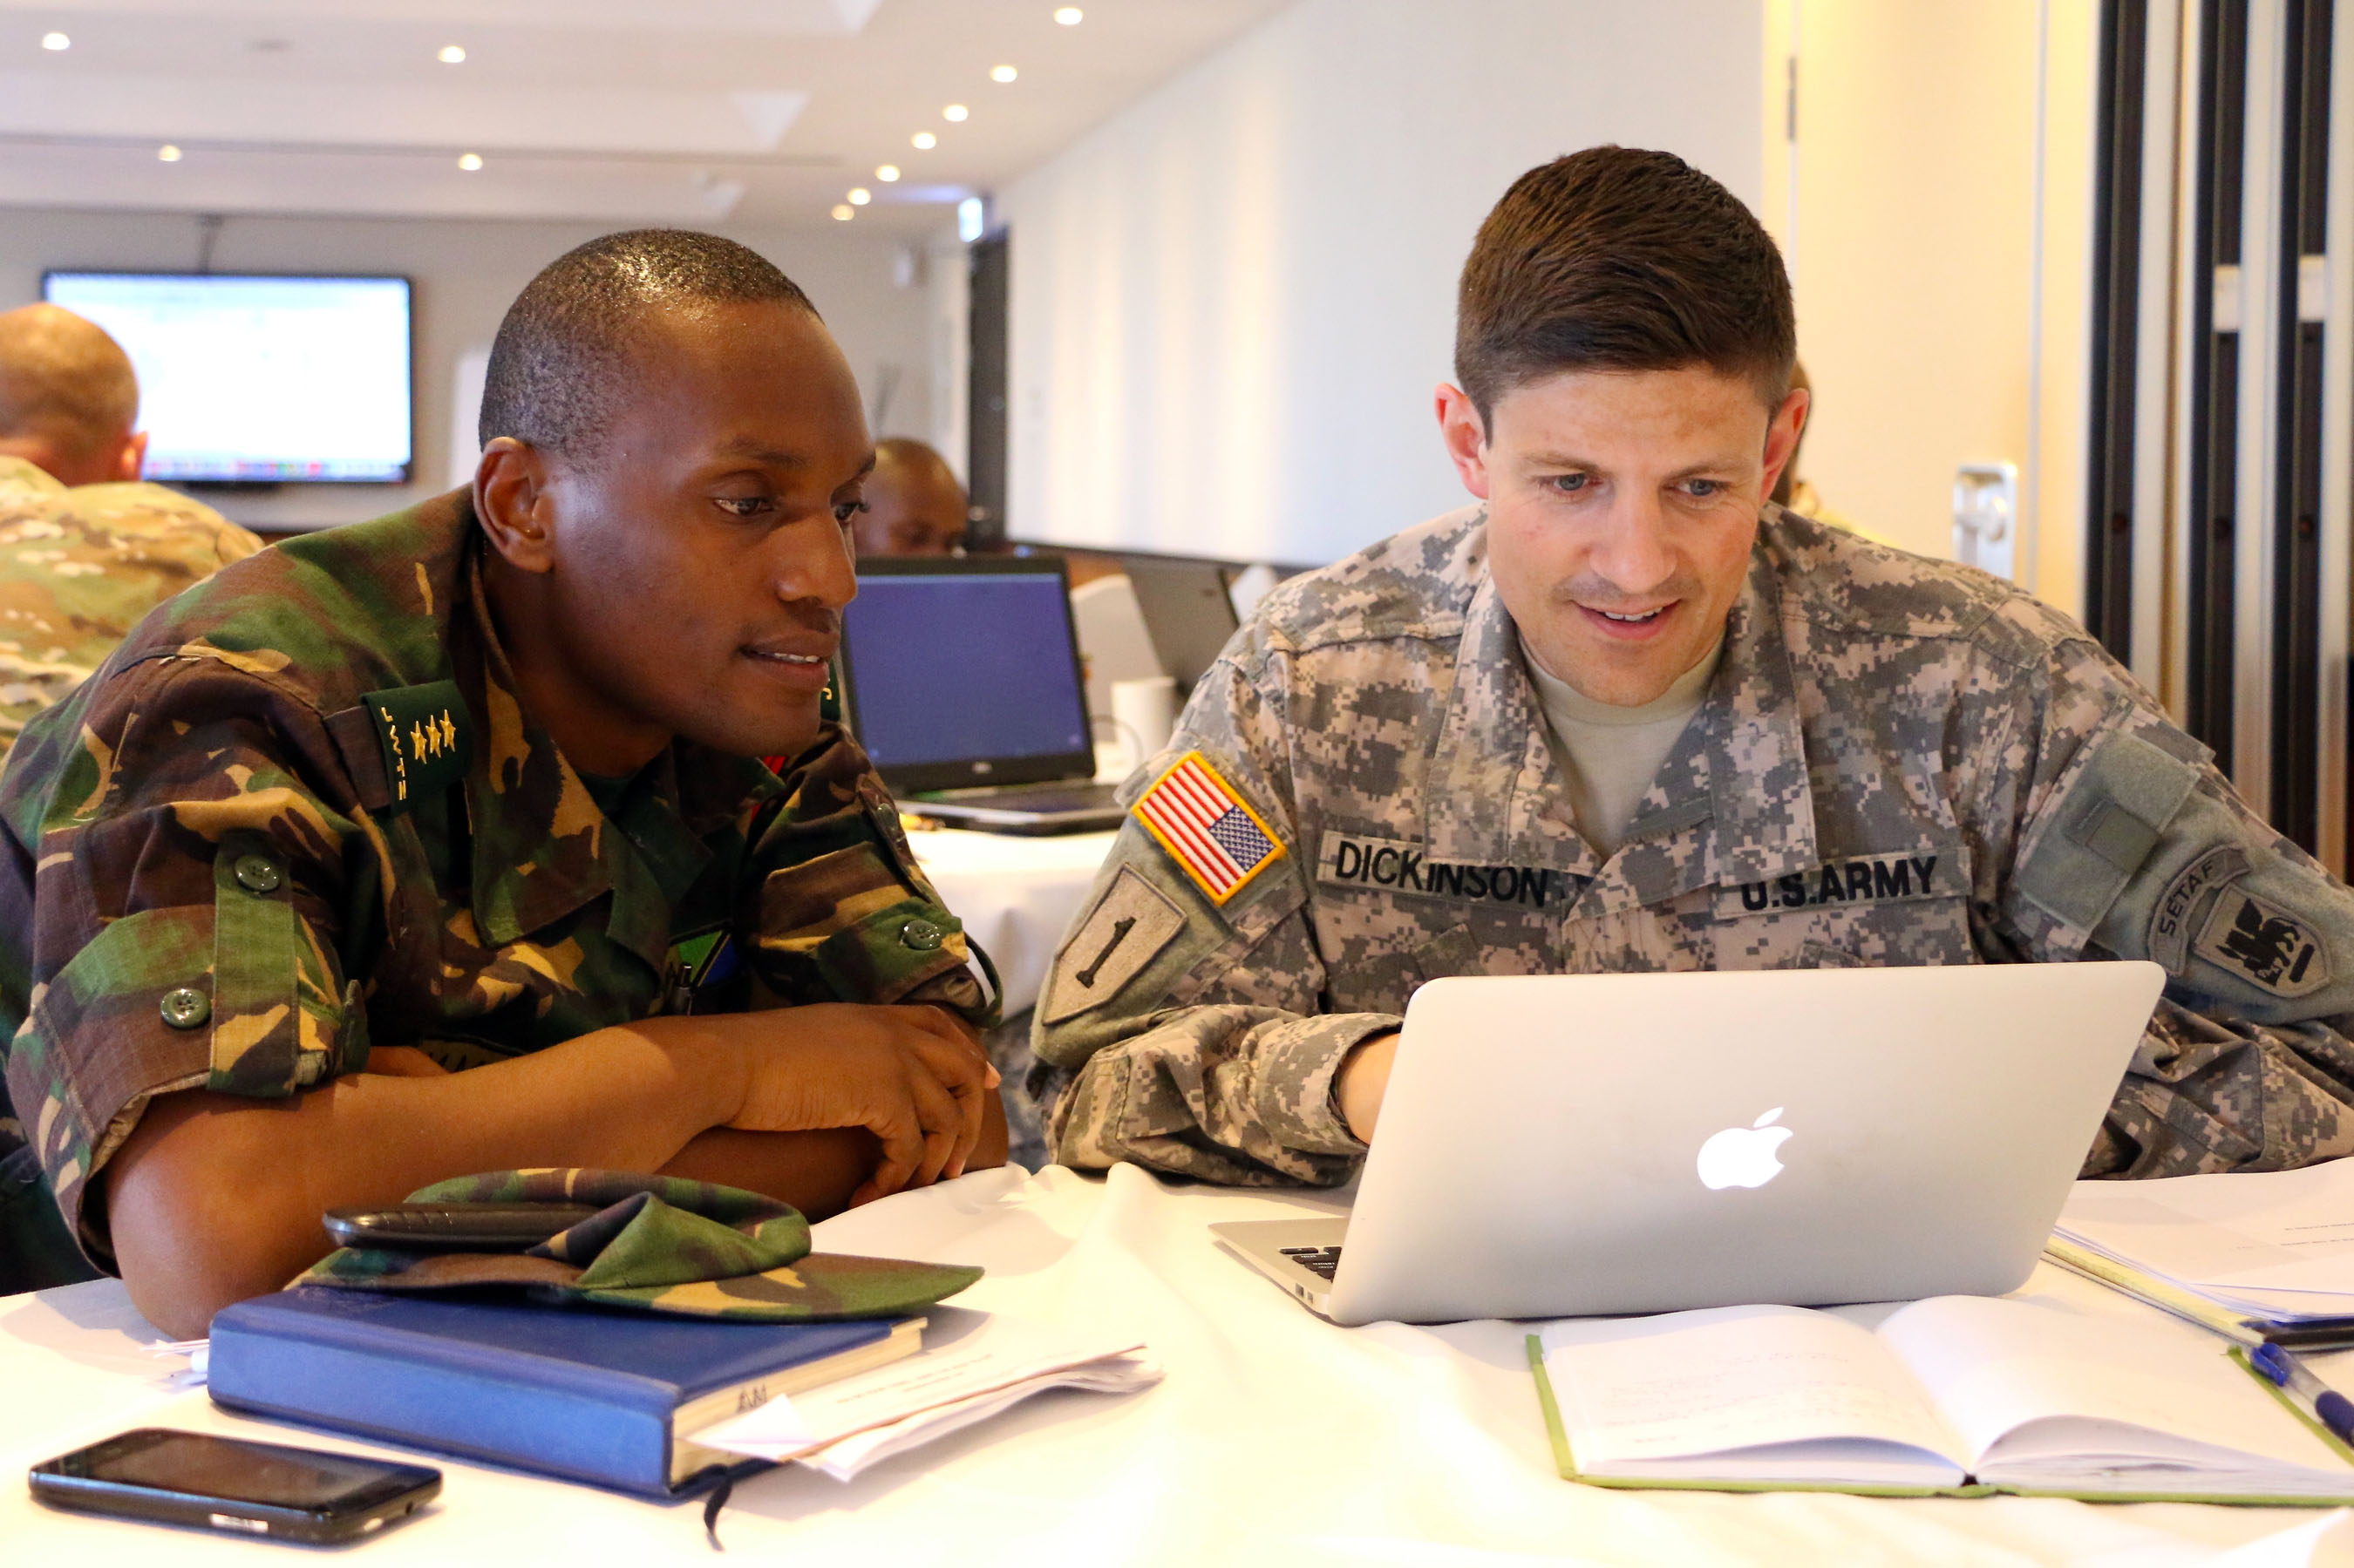 Capt. Joshua Dickinson, operational law attorney with U.S. Army Africa and Tanzanian People's Defense Force attorney Capt. Mbwambo discuss work on the exercise support agreement during the final planning event for exercise Eastern Accord 2016 in Dar es Salaam, Tanzania, May 2. EA 2016 is an annual, combined, joint military exercise bringing together partner nations to practice and demonstrate proficiency in conducting peacekeeping operations. (U.S. Army Africa photo by Capt. Jarrod Morris)